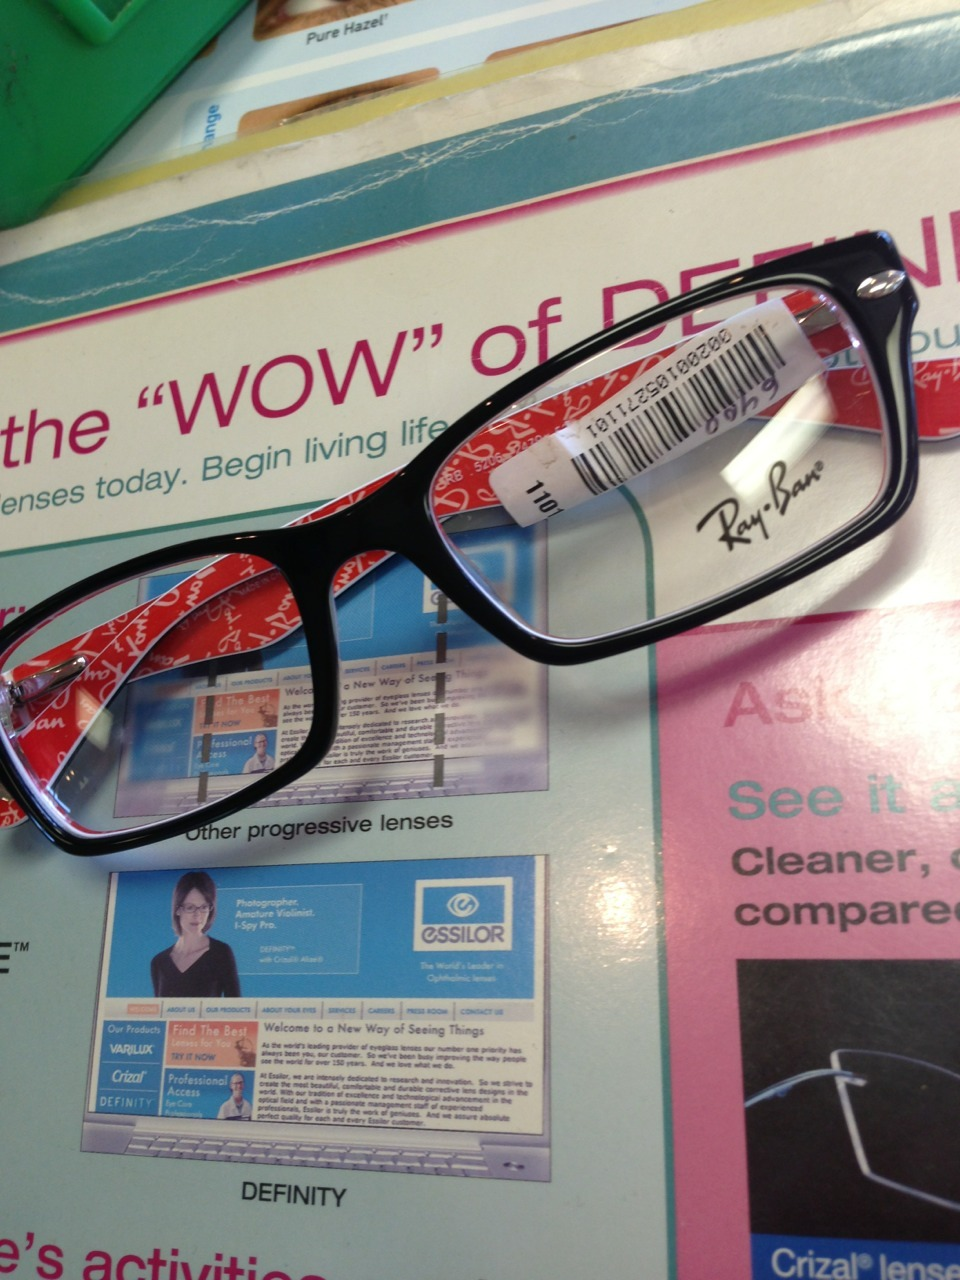 allheart-n:  So the oculist told me i need glasses  so im getting these RayBan glasses👌💛💁  I have these glasses c: